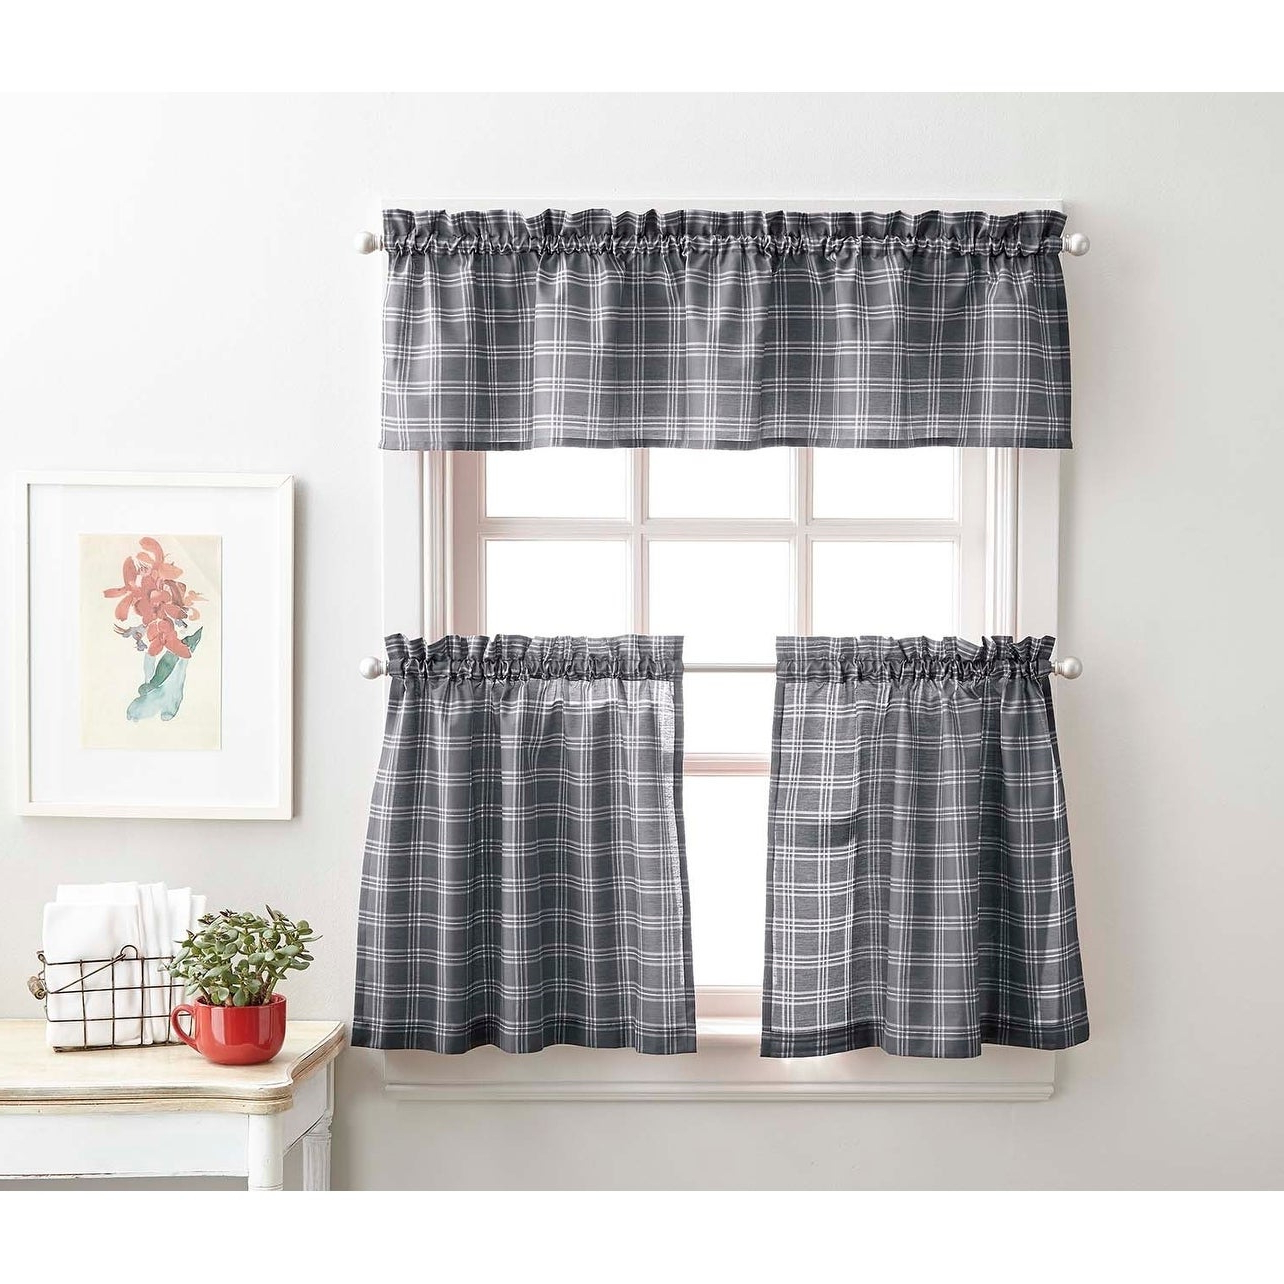 "Trendy Lodge Plaid 3 Piece Kitchen Curtain Tier And Valance Set – 36"" 3pc Set Inside Twill 3 Piece Kitchen Curtain Tier Sets (View 6 of 20)"